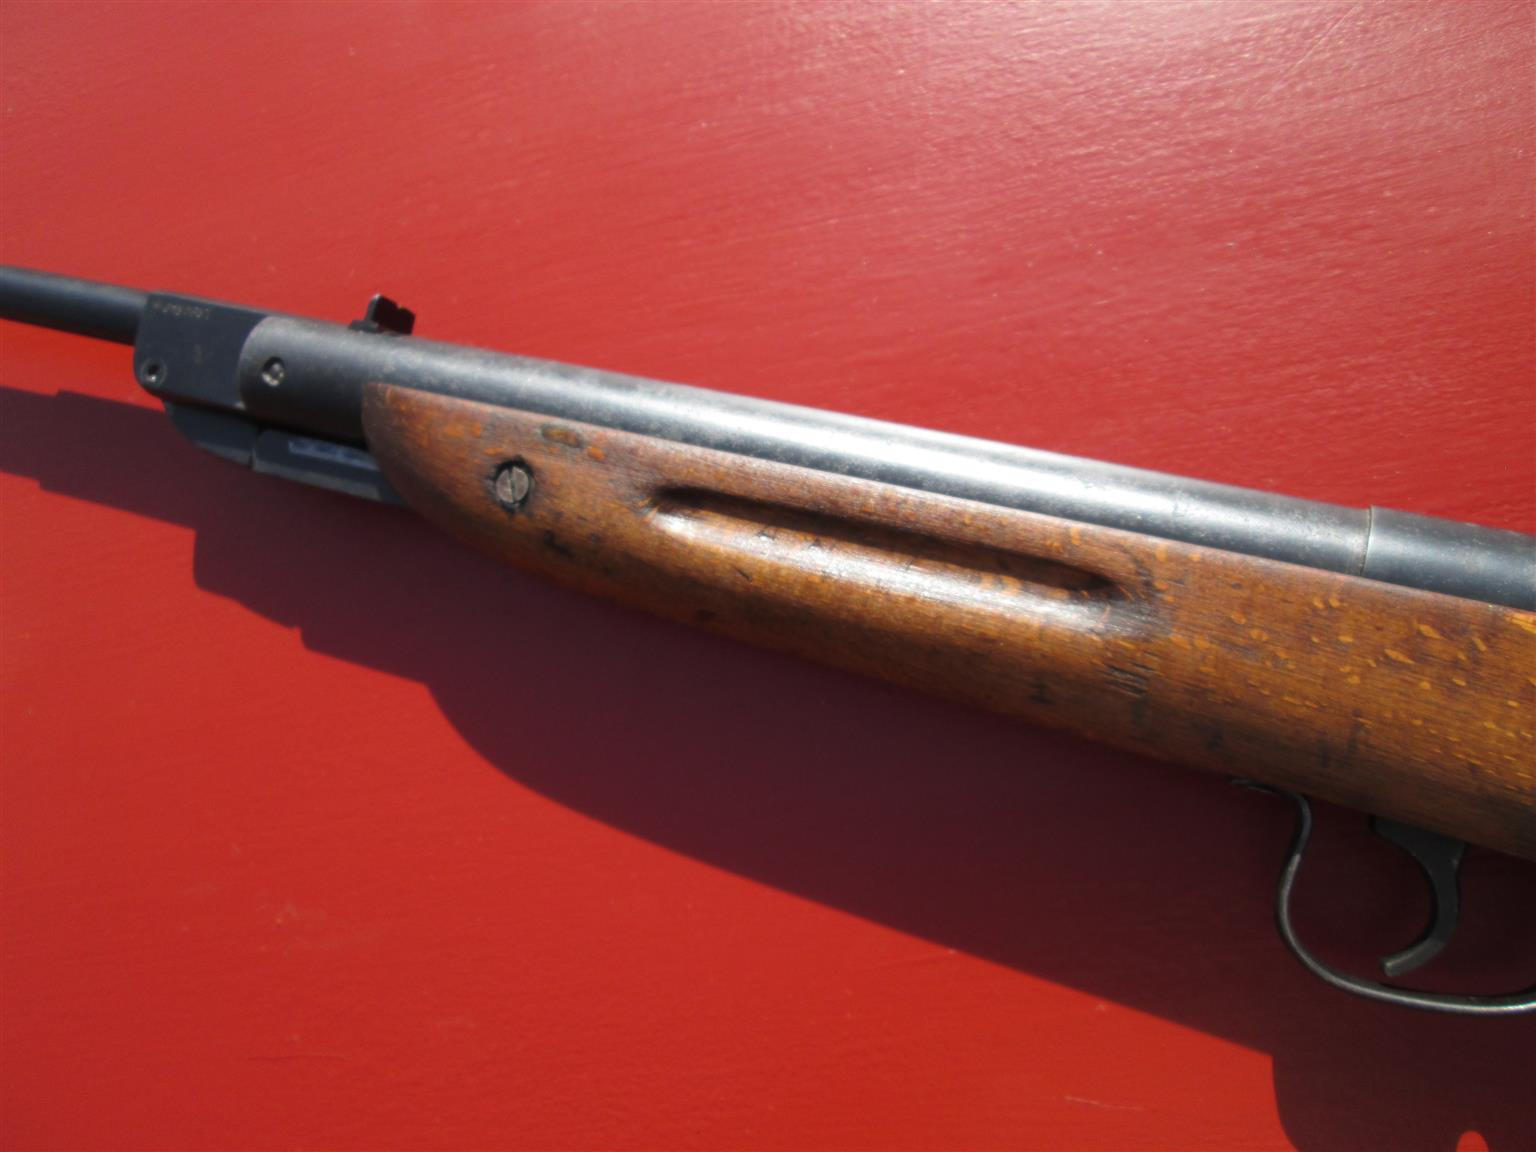 FALKE Mod. 70 (Germany), very rare: air-gun, air-rifle, windbuks, vintage, collectable, fully functional (Gecado, Diana, BSA, Telly, Wishco Erlangen, Webley also available and listed)